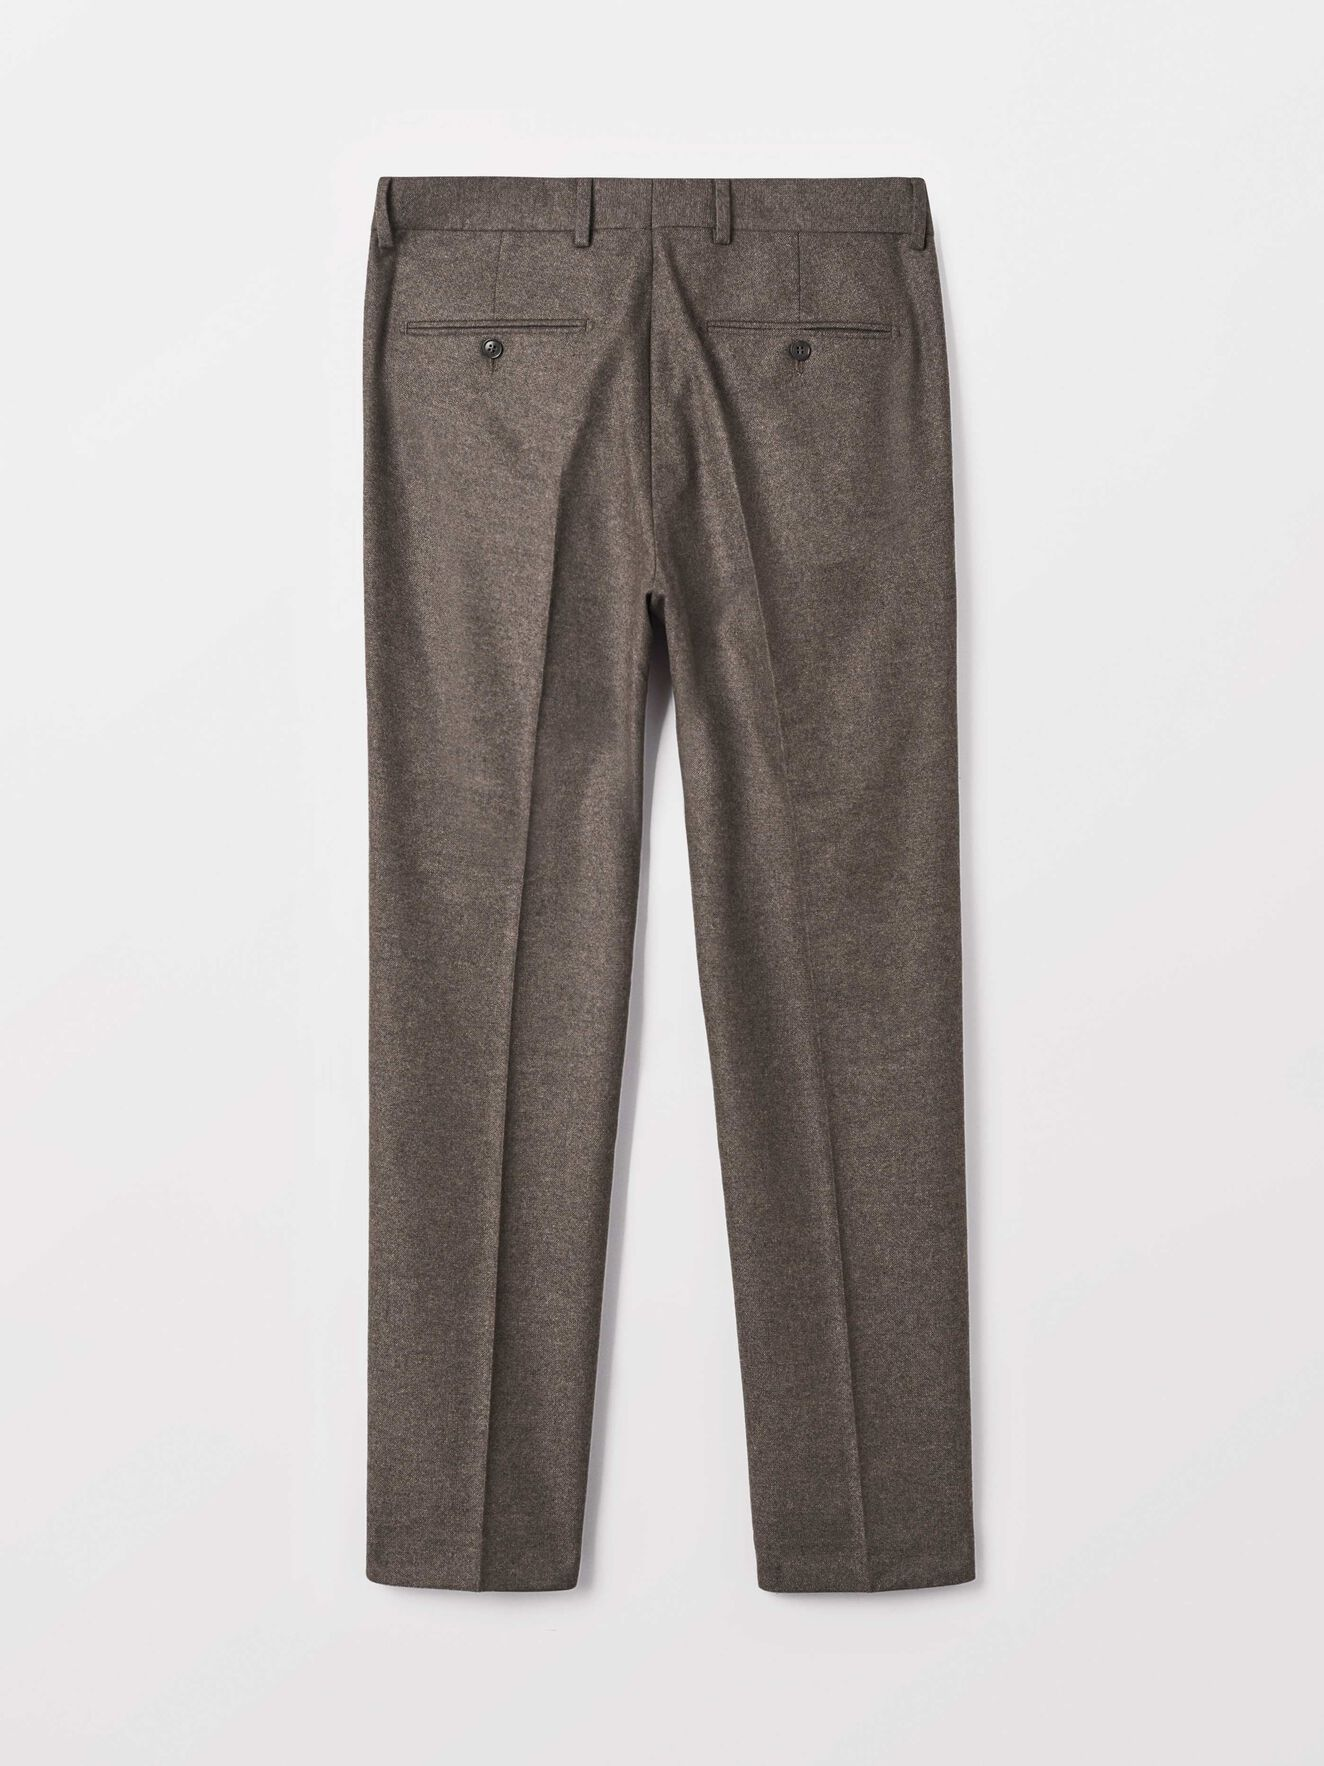 Tordon Trousers in Dark Honey from Tiger of Sweden